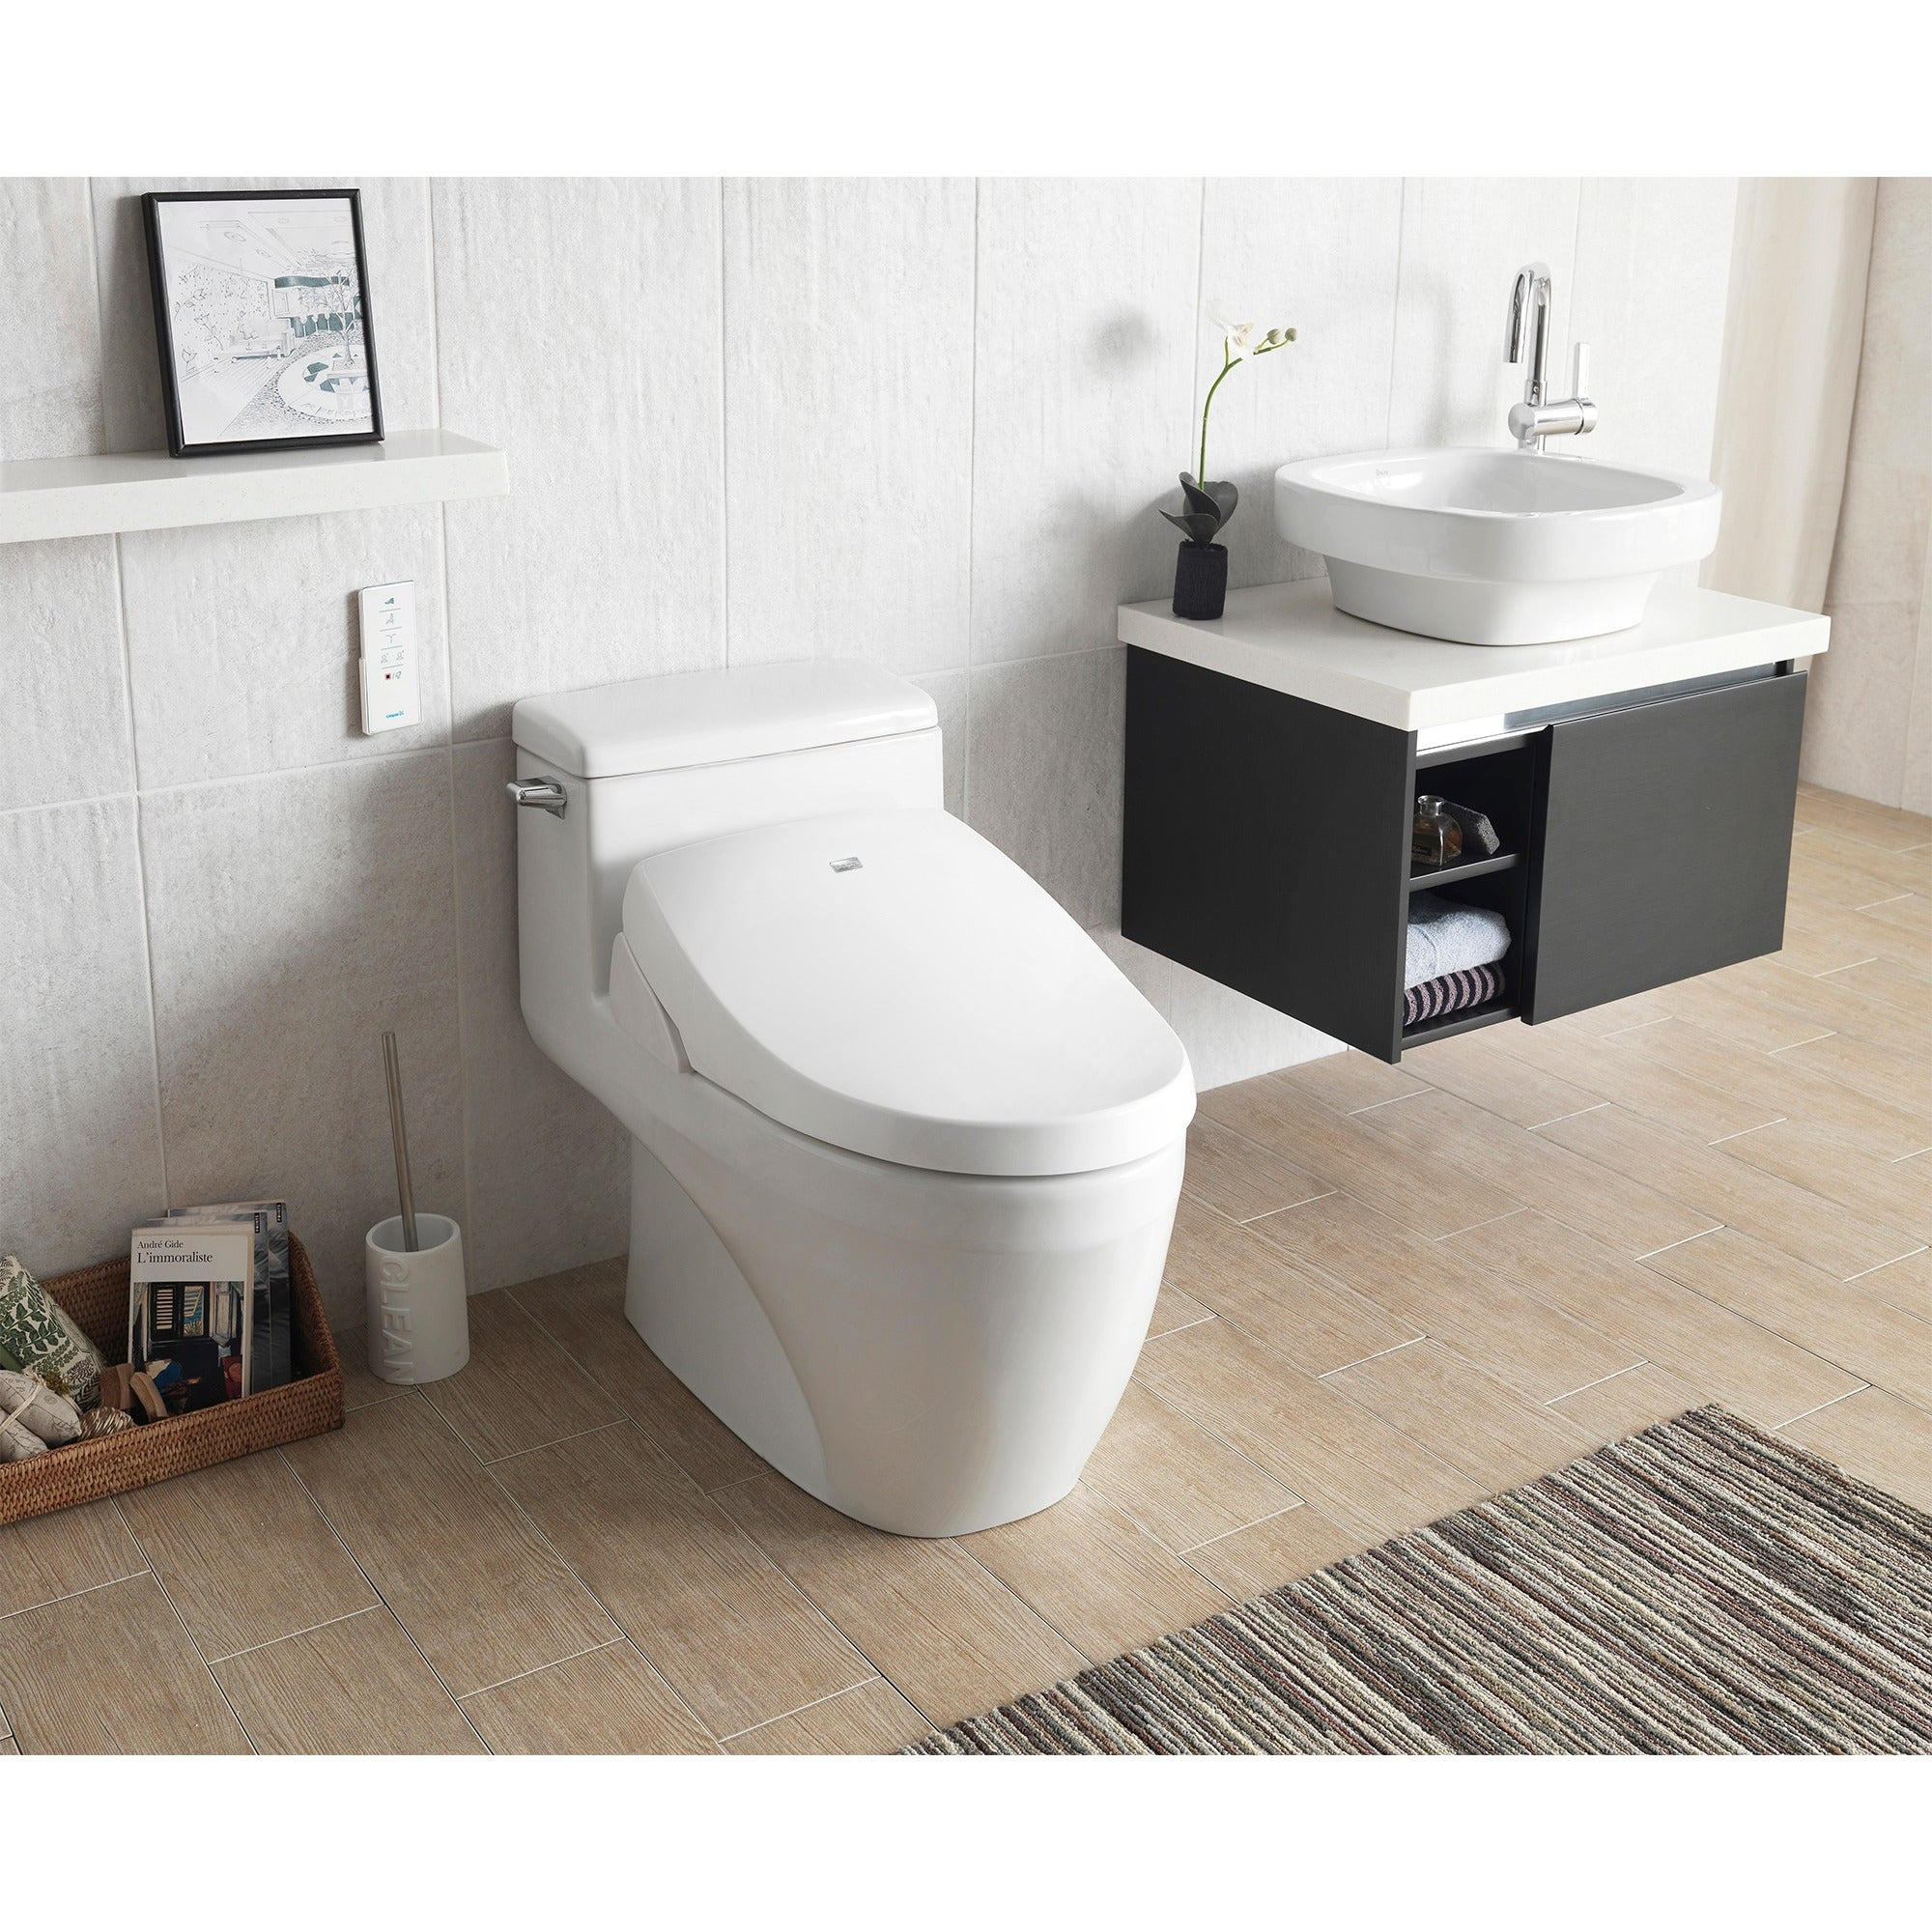 virtuemart component seat detail call index productsroot for toilet bidet price bathroom